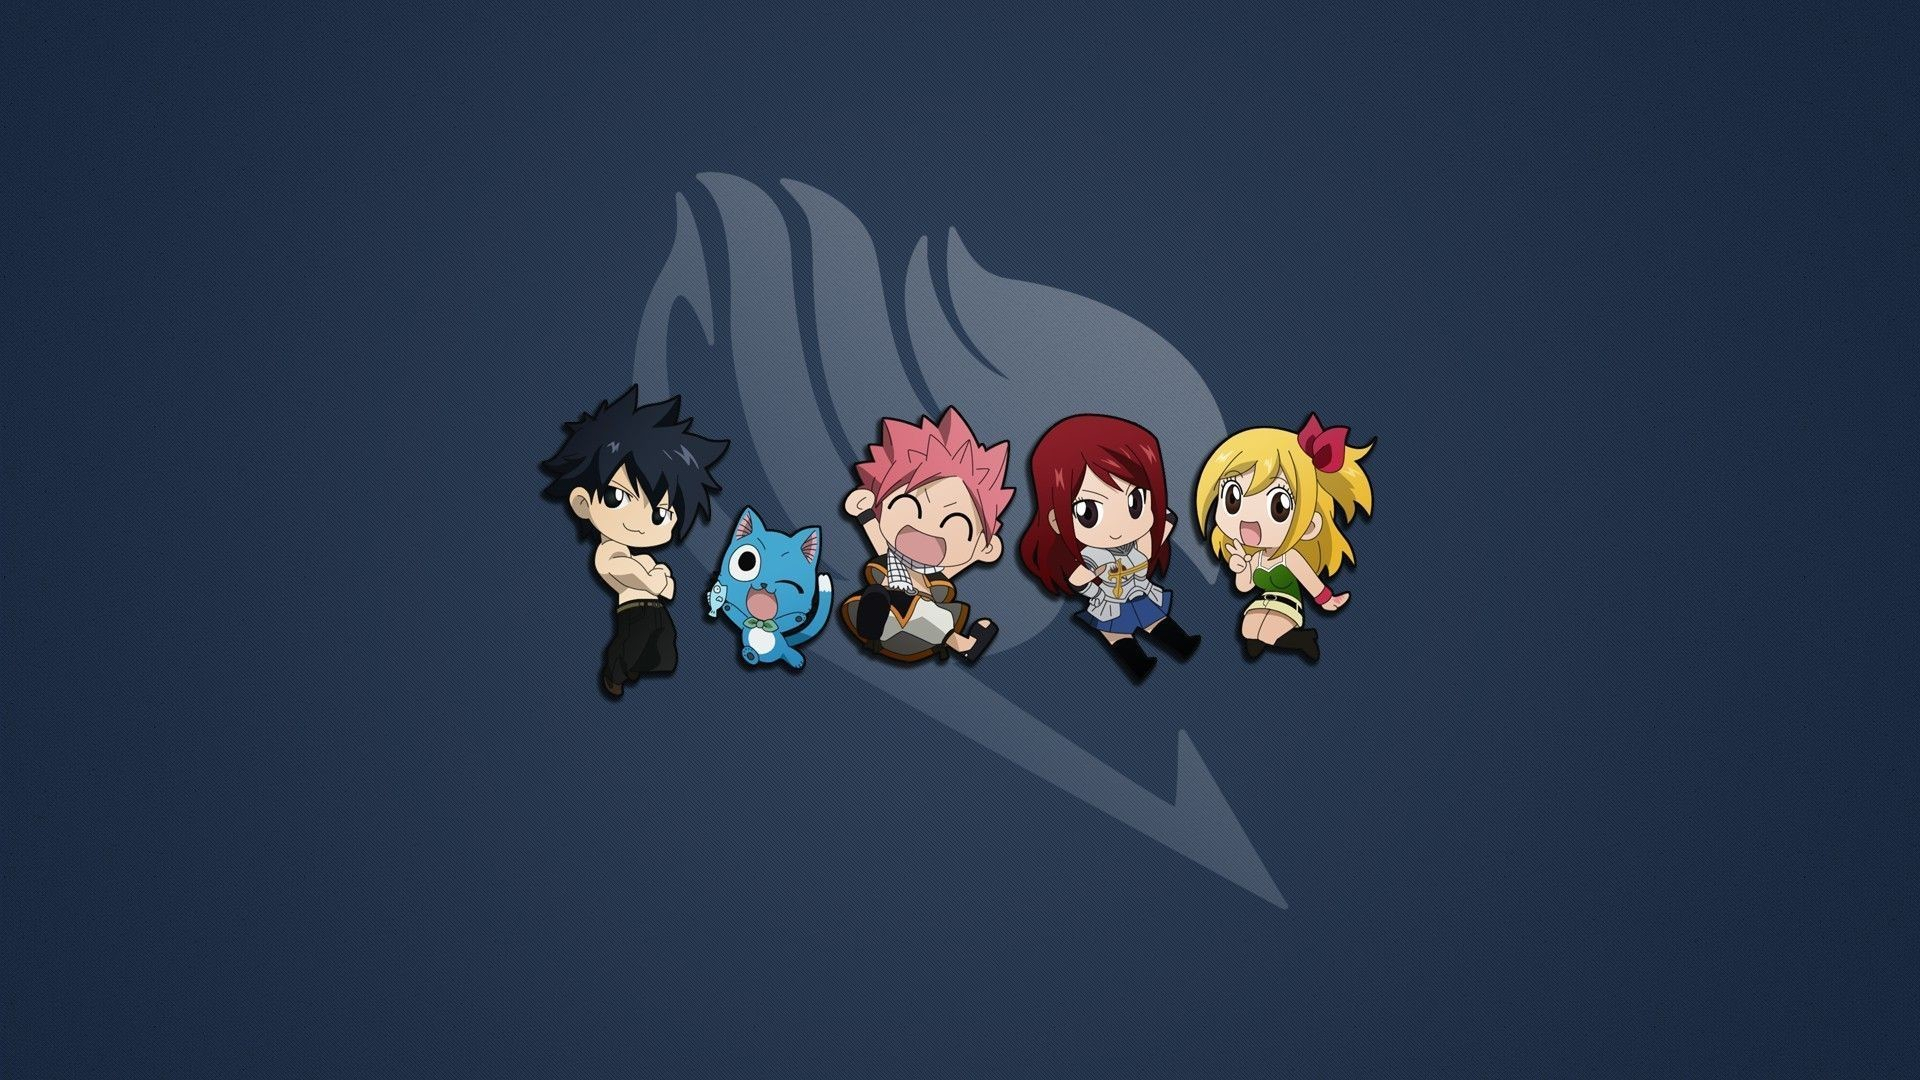 Res: 1920x1080, Fairy Tail HD Wallpapers Backgrounds Wallpaper 1920×1080 Fairytail Anime  Wallpapers (33 Wallpapers) | Adorable Wallpapers